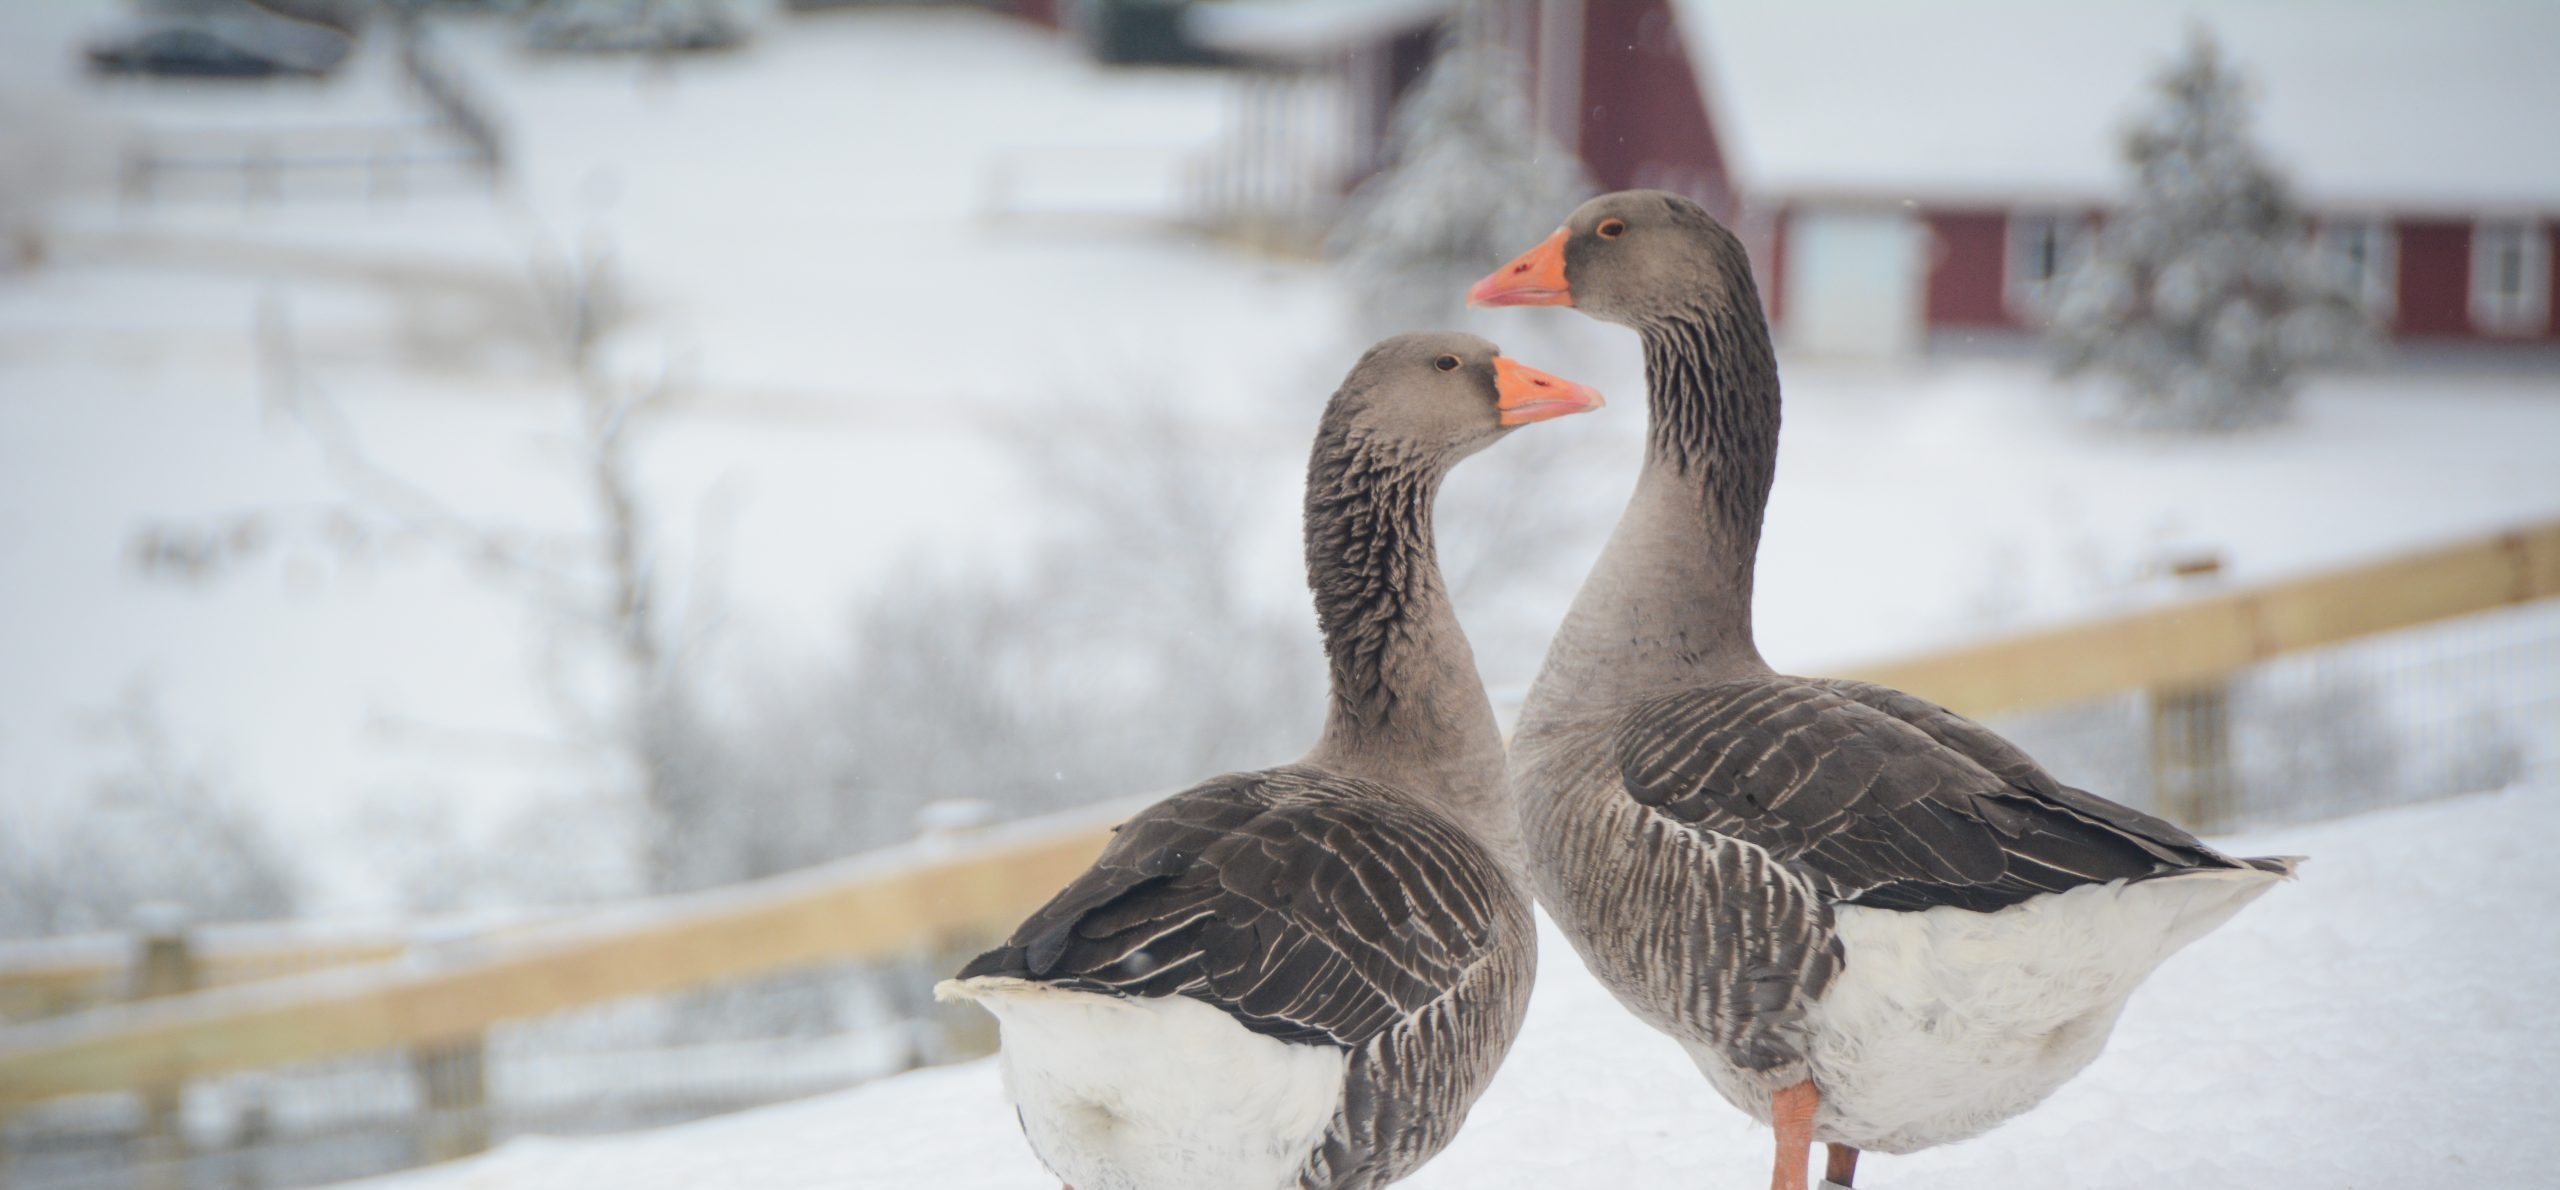 Willie and Reba Geese at Farm Sanctuary's New York shelter